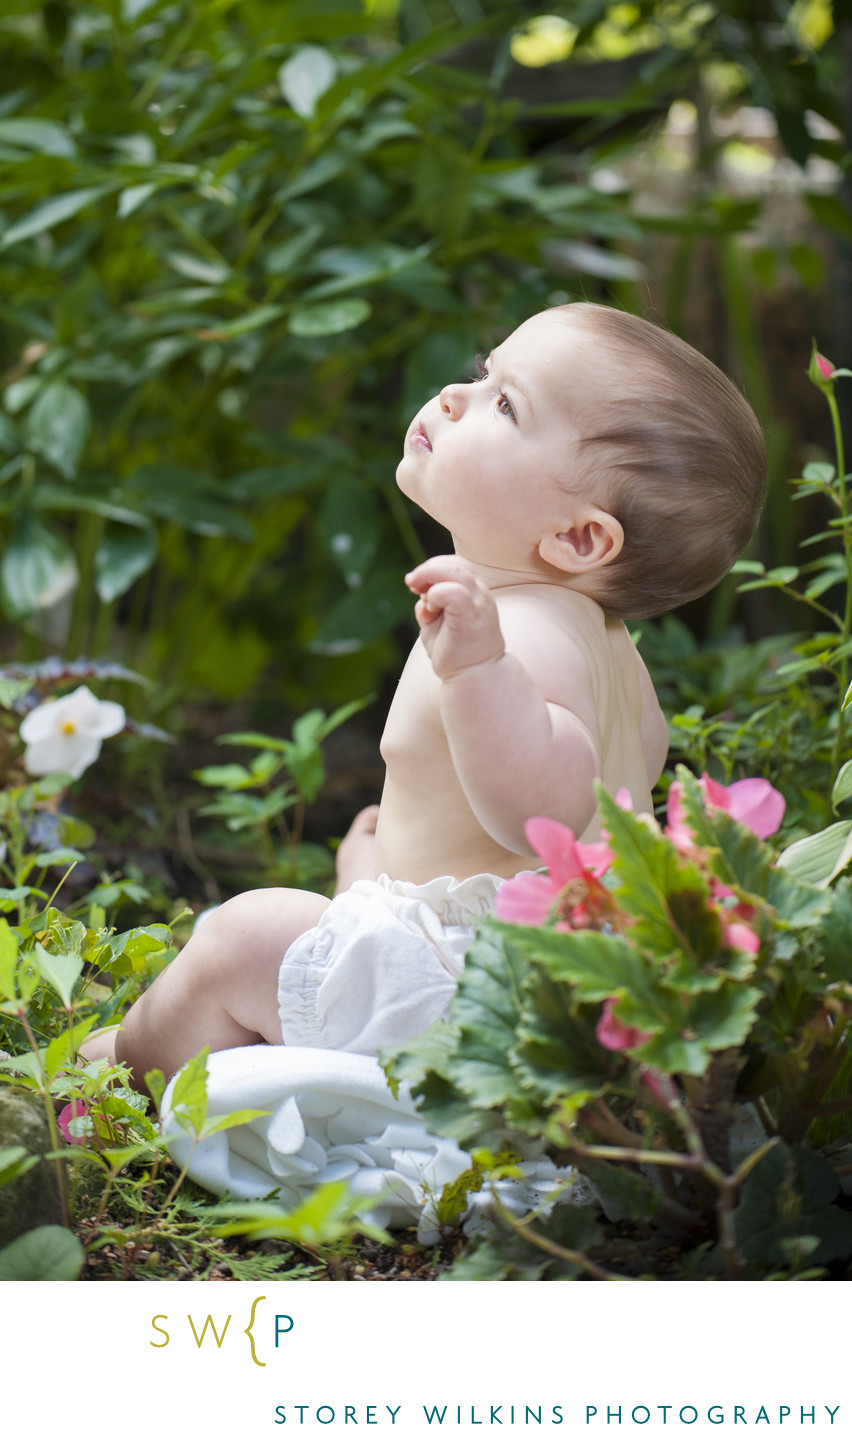 Classic Baby Portrait in the Backyard Garden